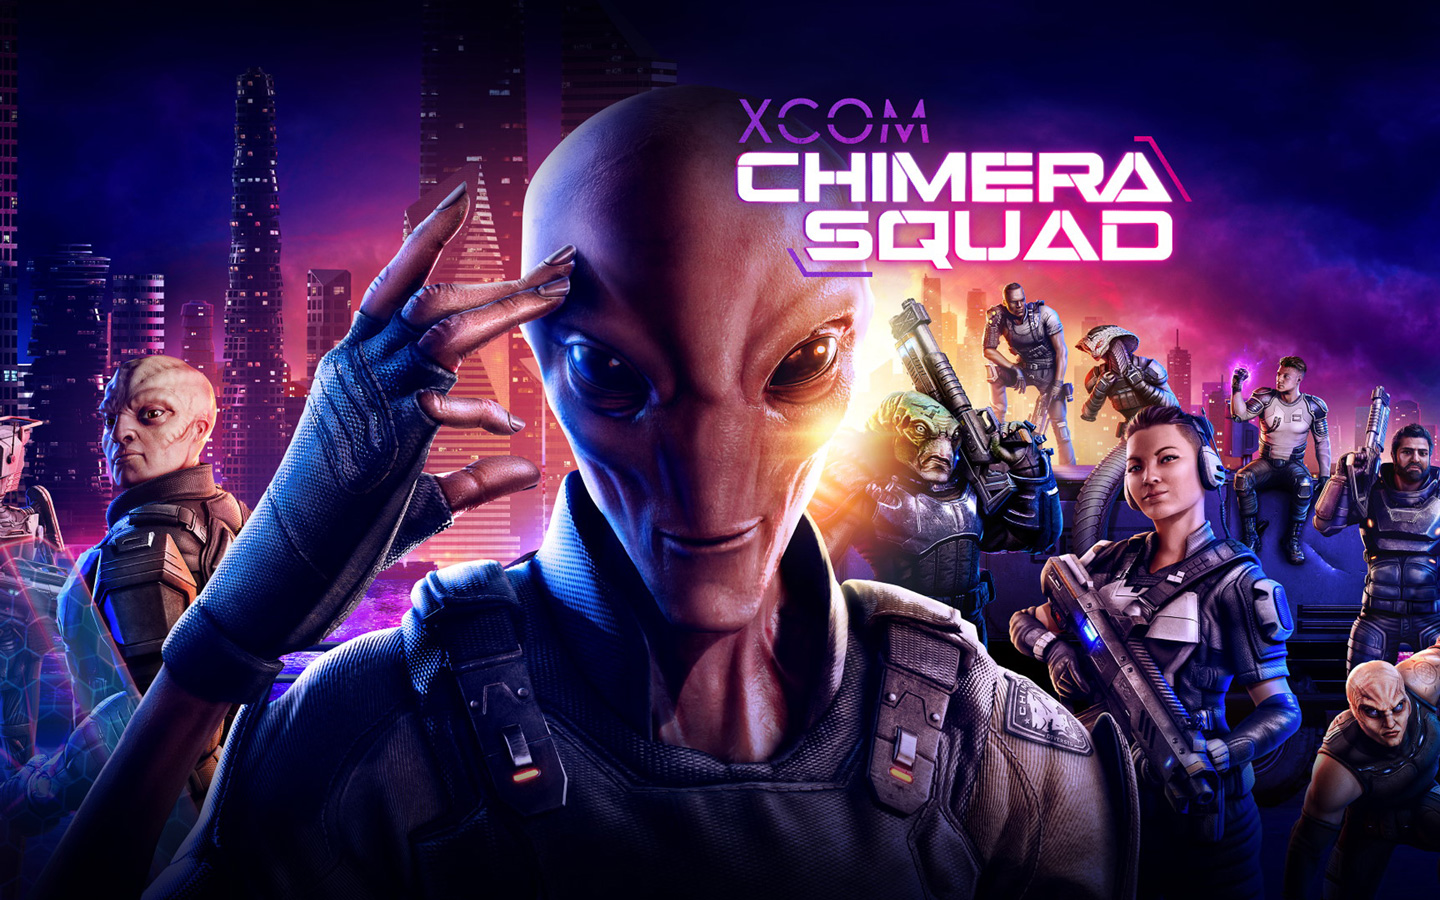 Free XCOM: Chimera Squad Wallpaper in 1440x900